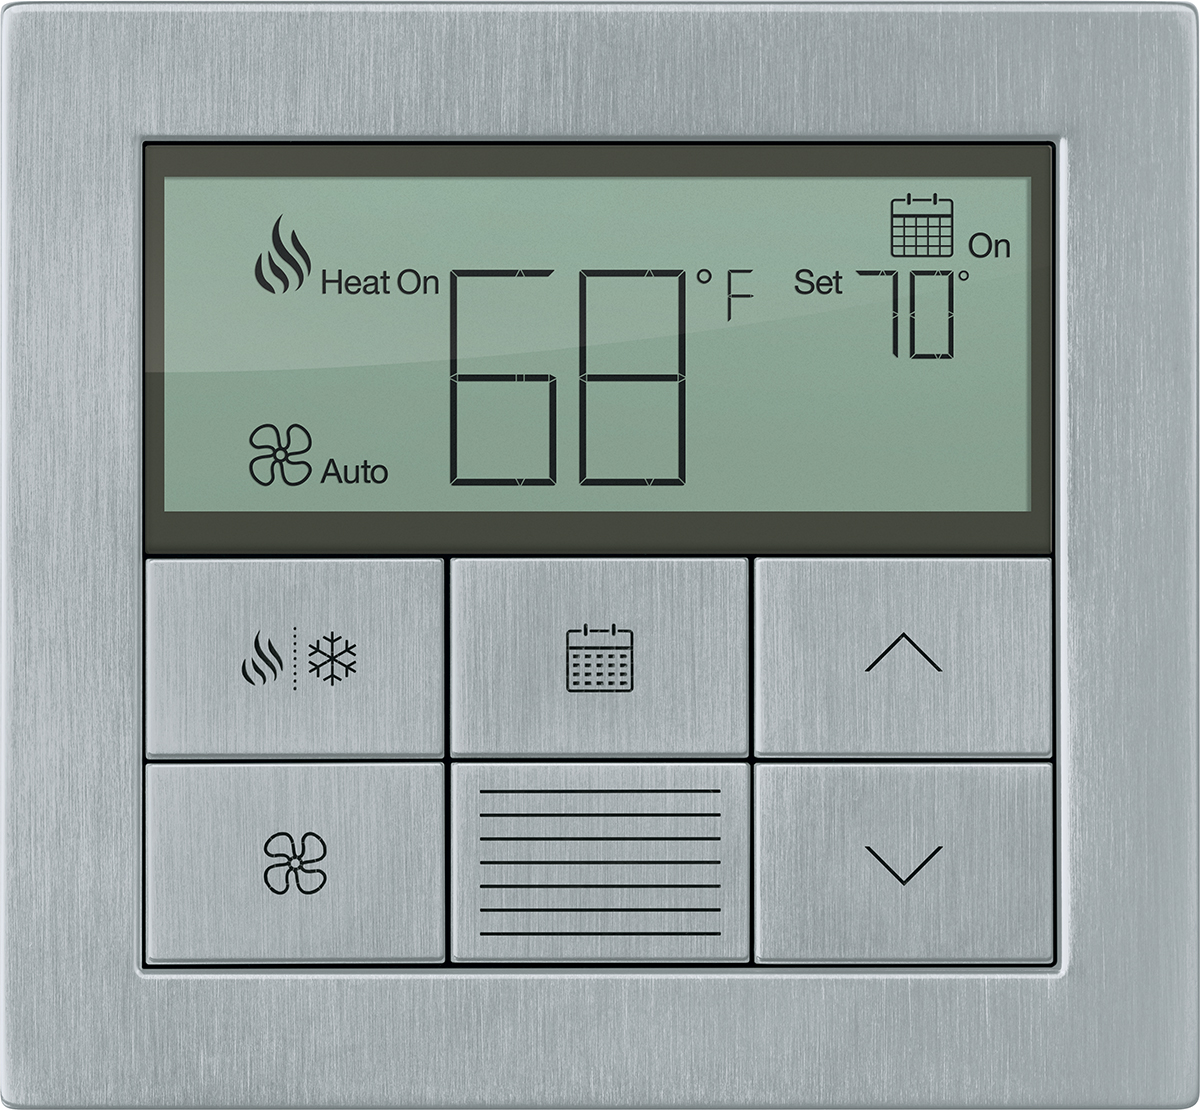 Lutron HVAC control - Lutron thermostats integrate nicely with the Lutron Home App. Track your usage, program certain times of the day to provide comfort when you need it, and save energy when you aren't around. The App easily allows you to turn each zone on or off remotely when you aren't home, or on your way home. Imagine you're on the way to the airport and you remember that the heat is programmed to come on on a schedule. Quickly pull out your phone and turn the away scene on, turning heat zones down, and triggering an away lighting and shade scene to imitate someone home for security.